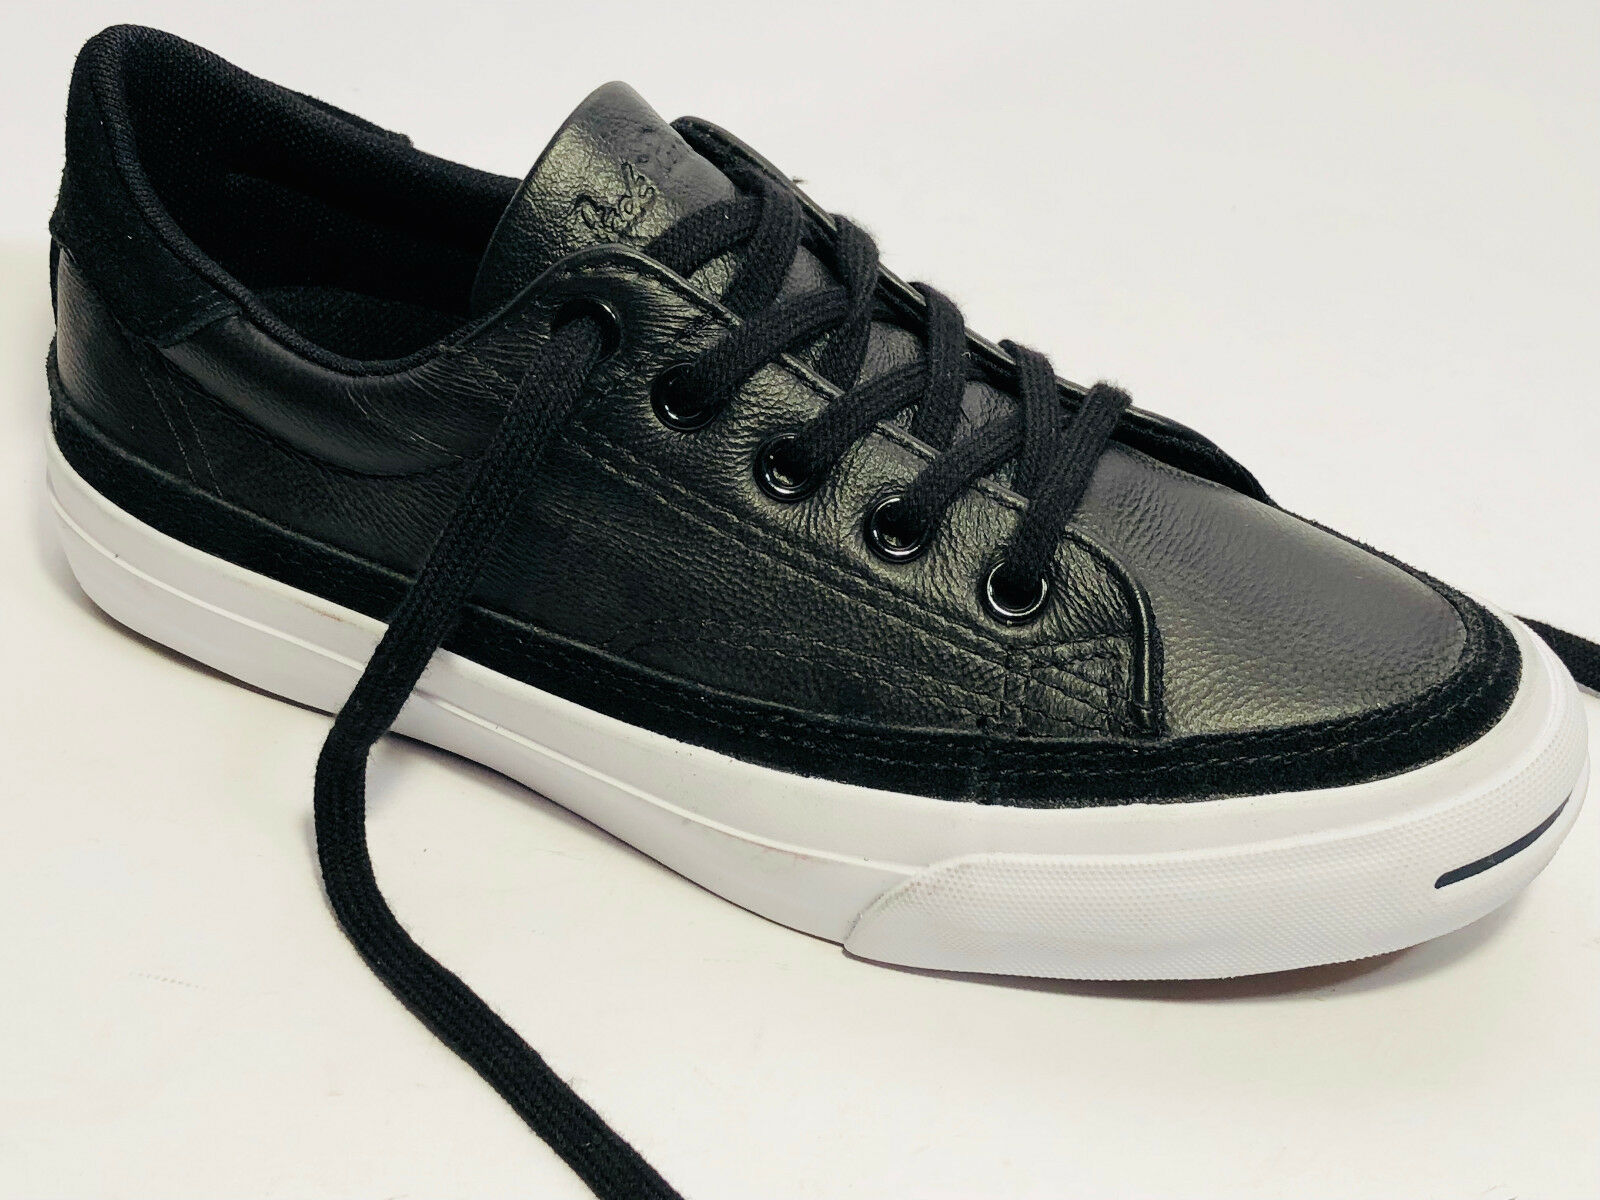 0a24e78212c56 Converse Cuir Sneaker Chaussures Taille 35